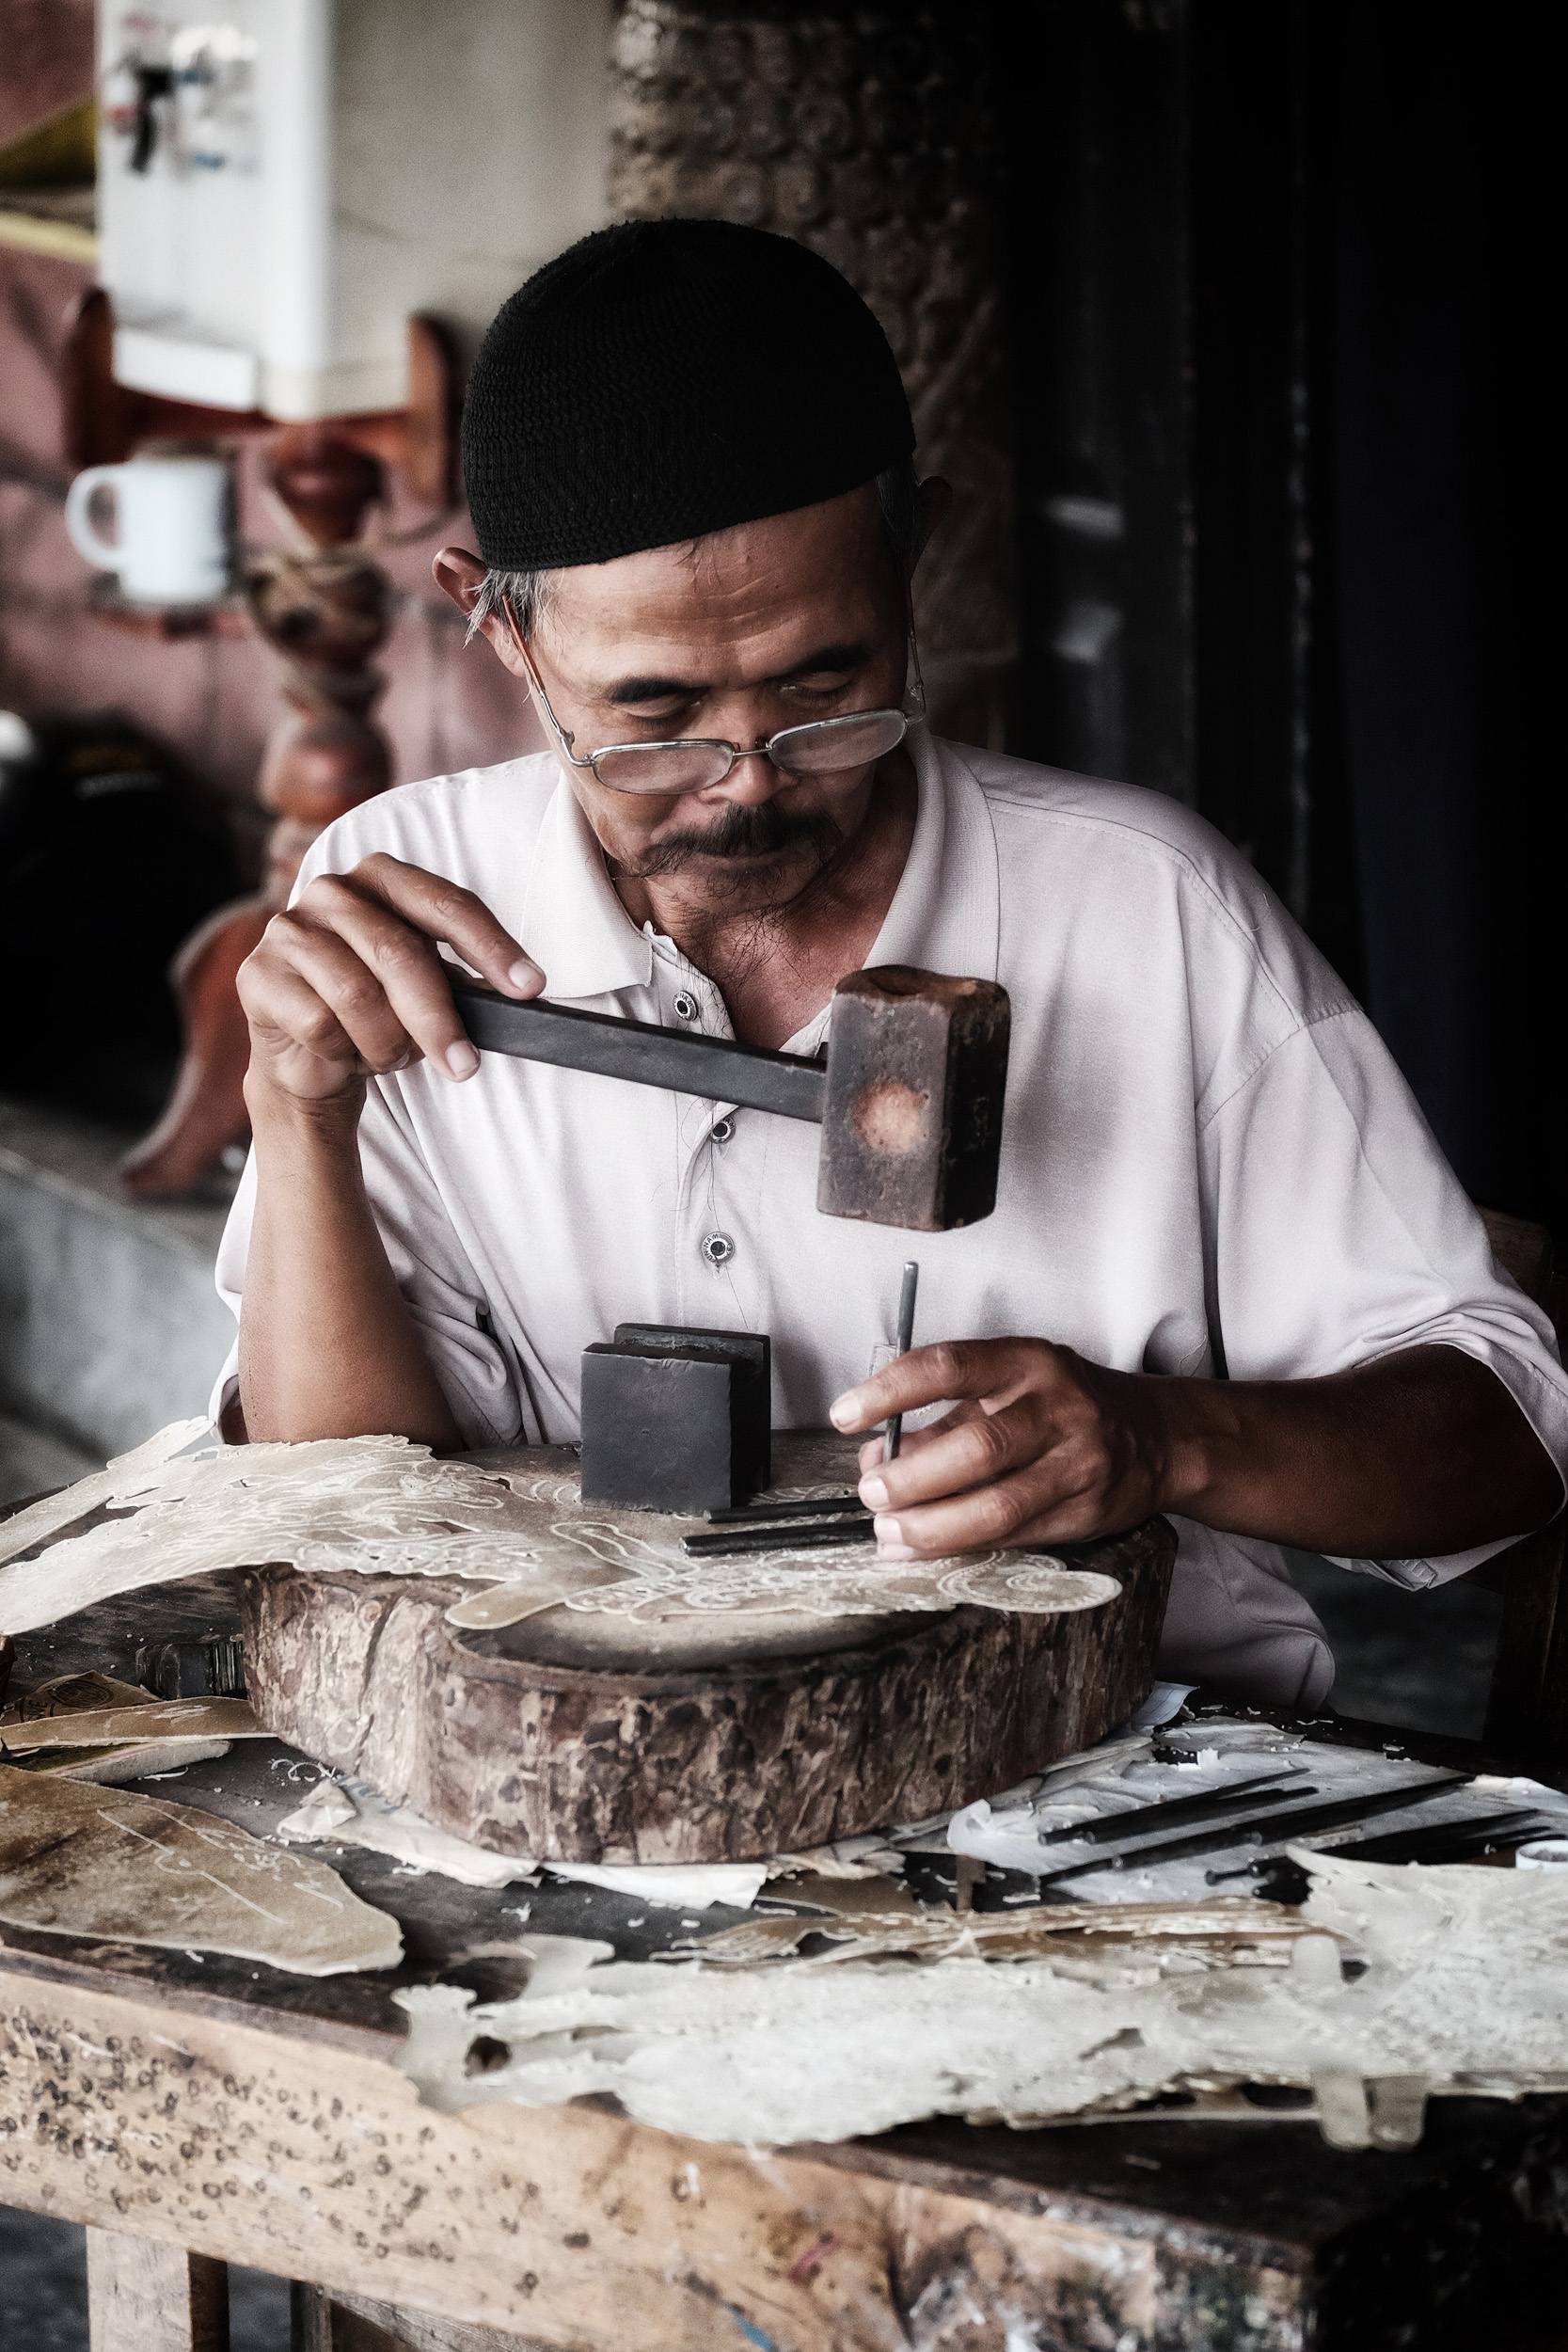 The Puppet Maker   A man makes shadow puppets for wayang kulit performance at the palace of Yogyakarta, Java.